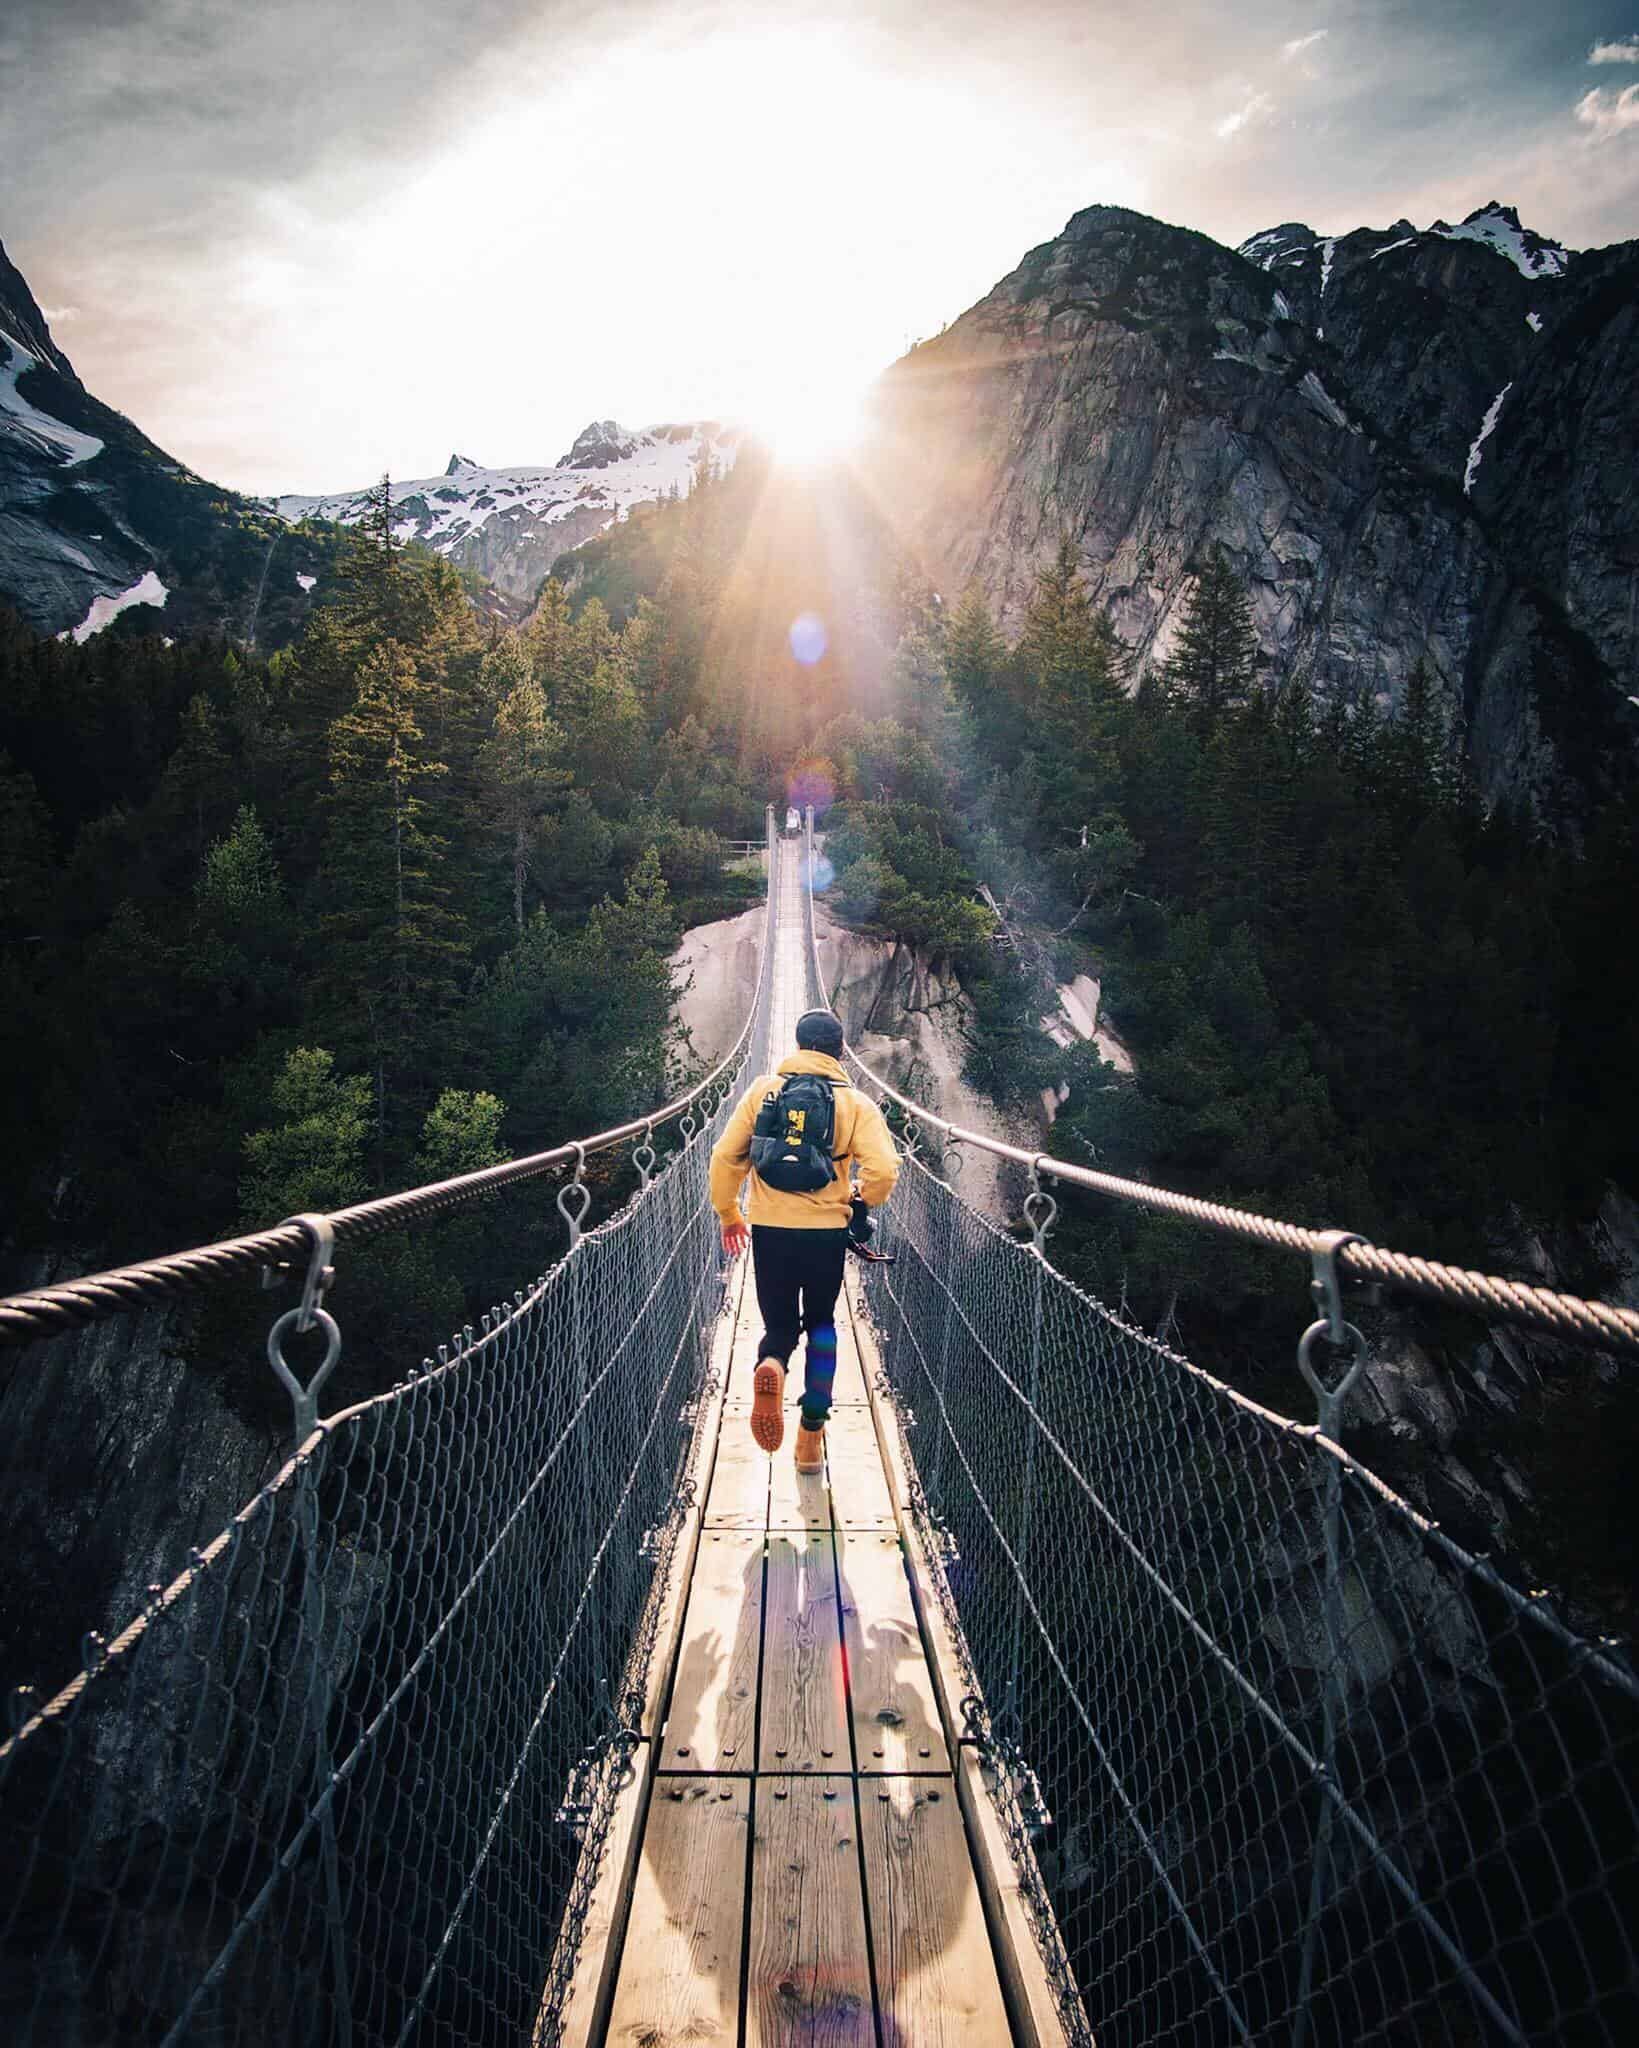 man-running-on-a-bridge-in-the-mountains